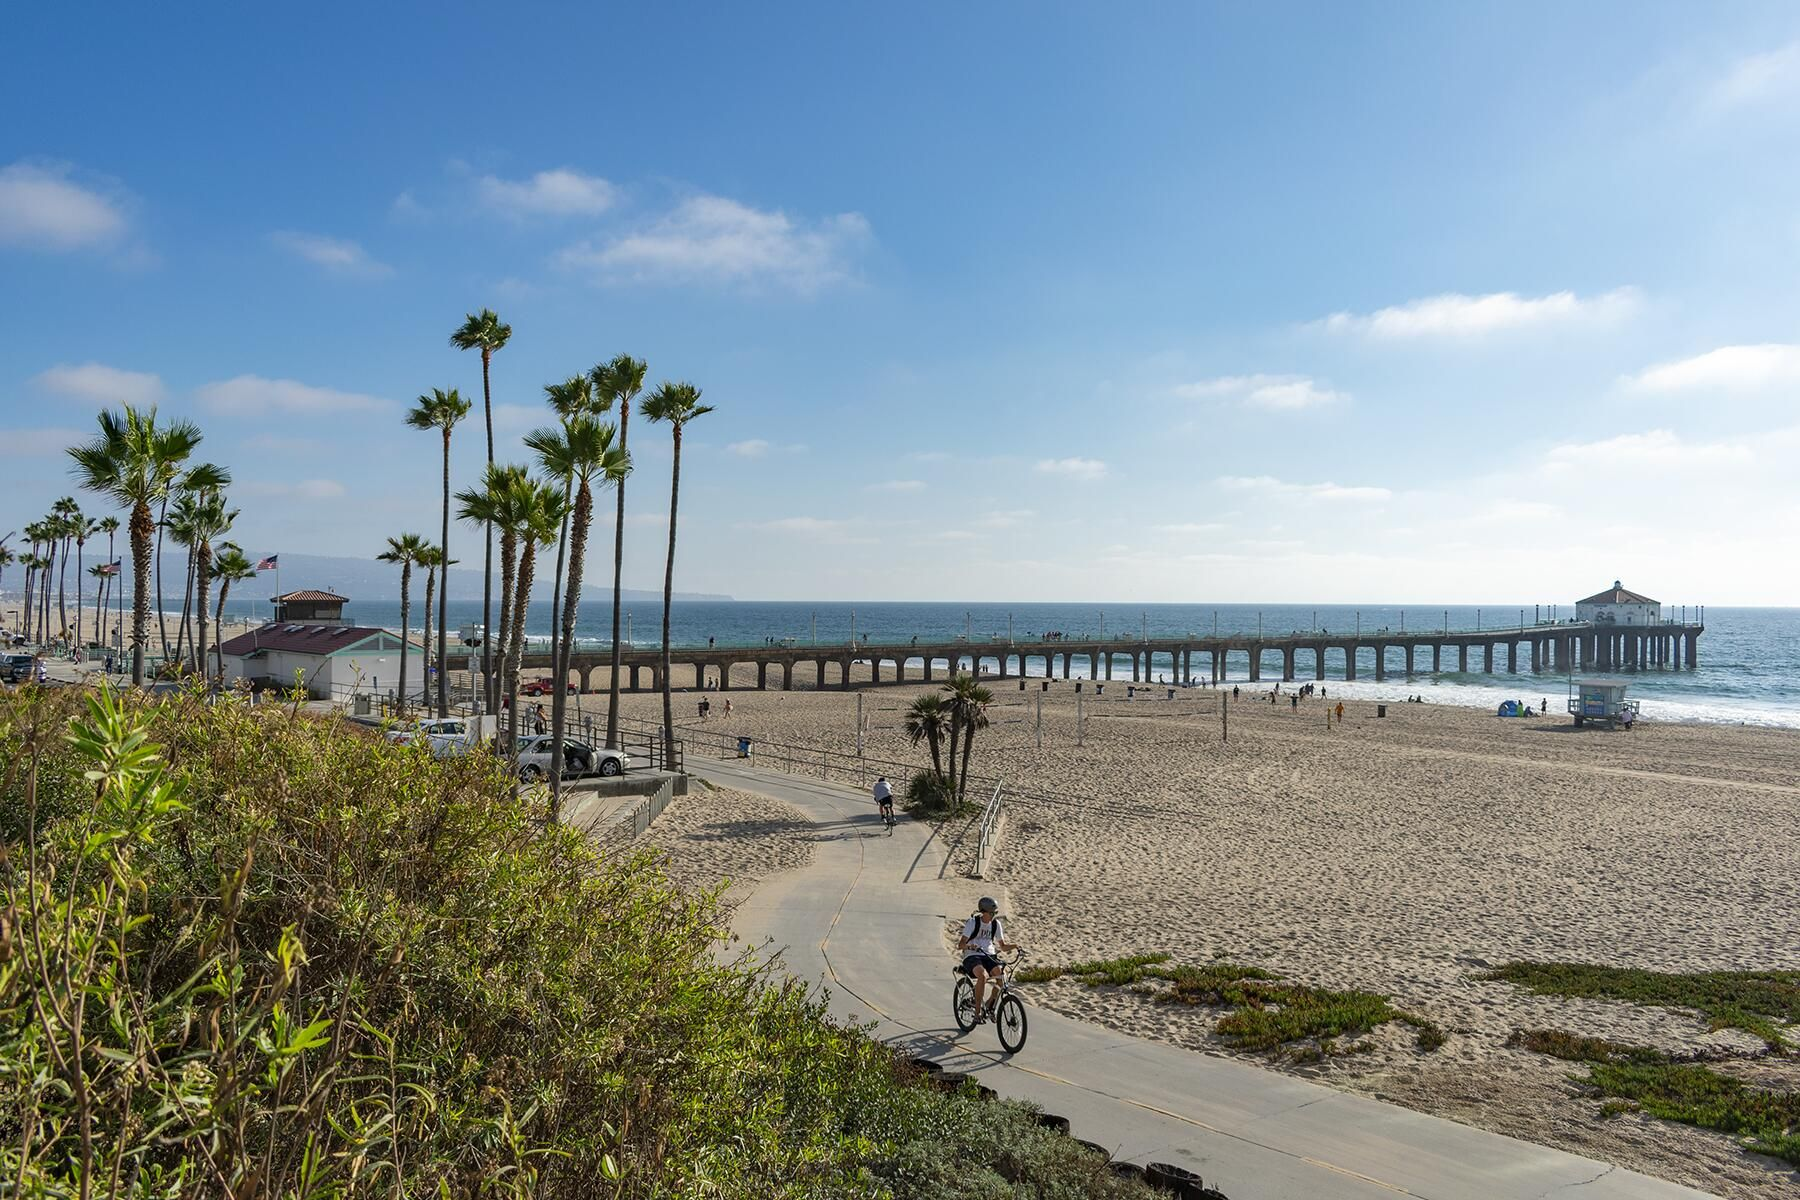 10 Best Beaches In Los Angeles Los Angeles Beaches Leo Carrillo State Park State Parks